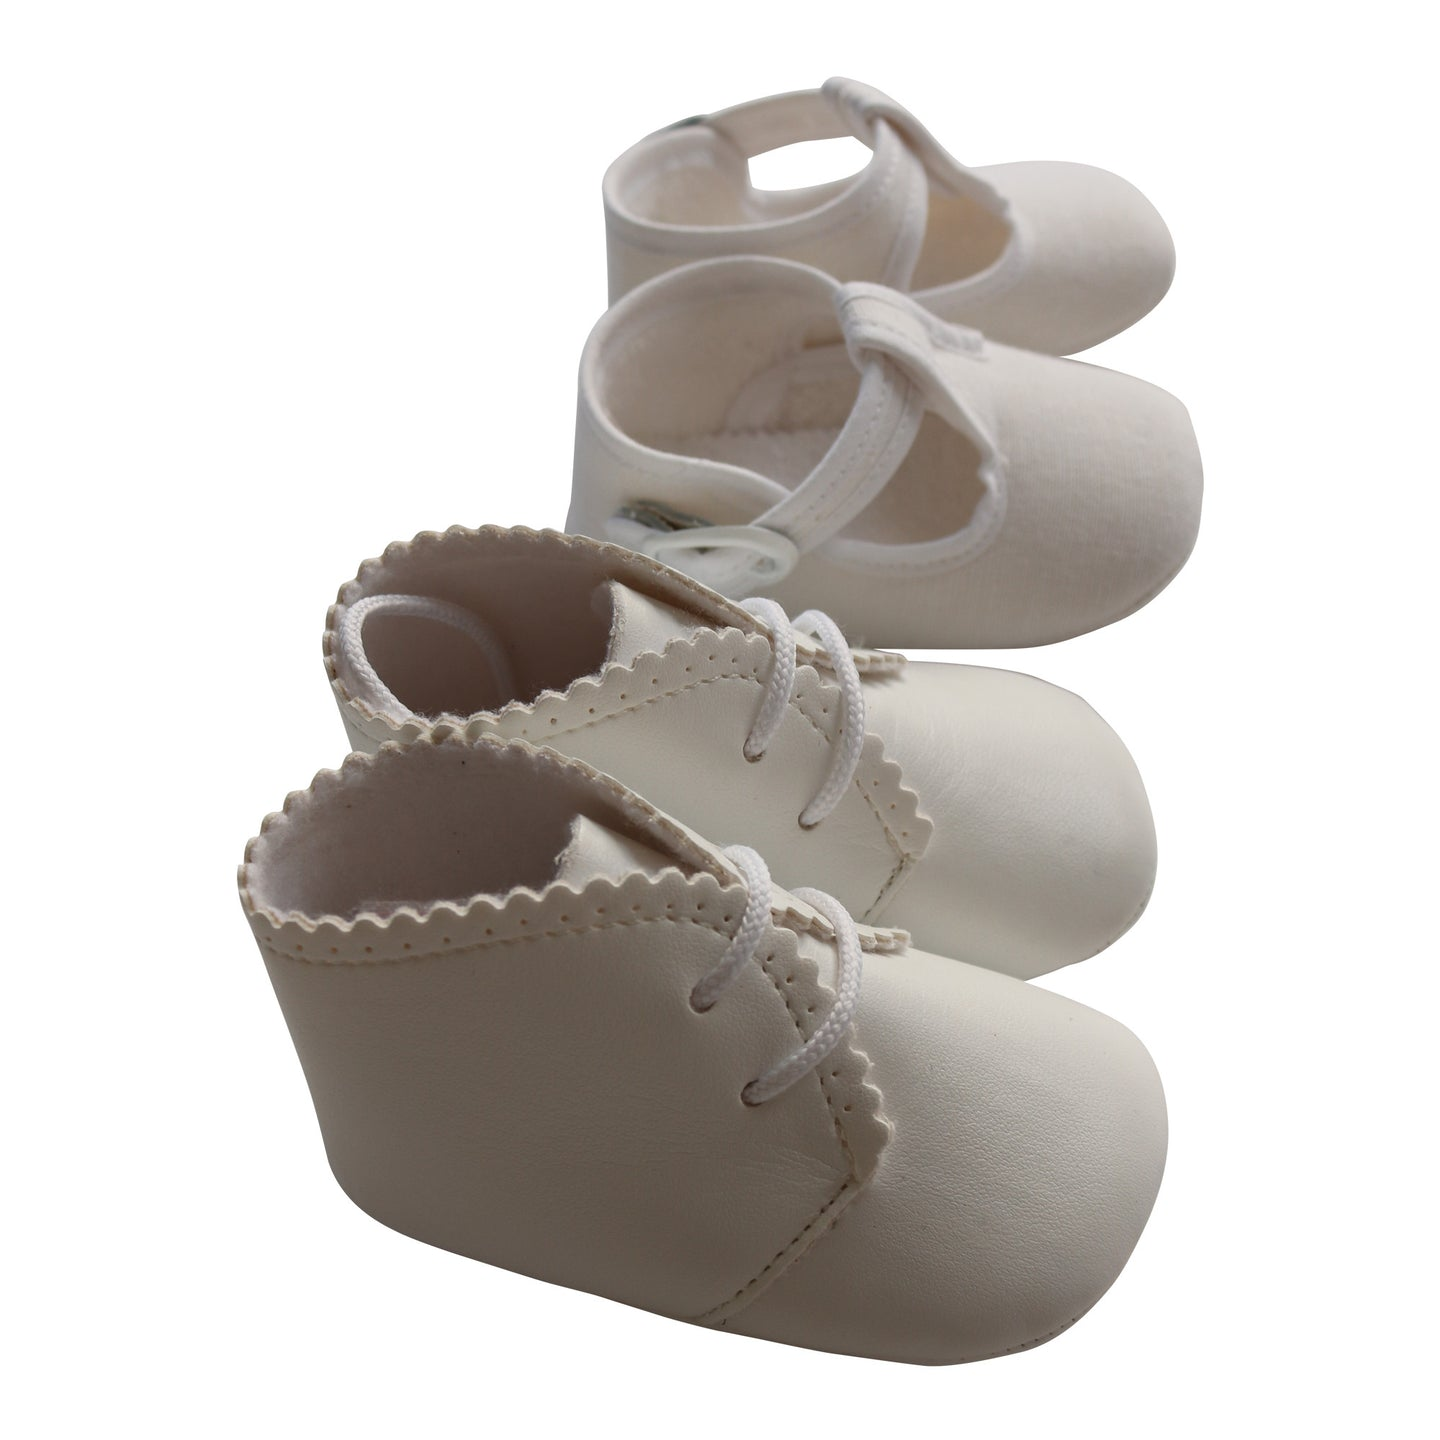 Baby Boutique Baby Shoes Pram Shoes by Spanish Designer Paz